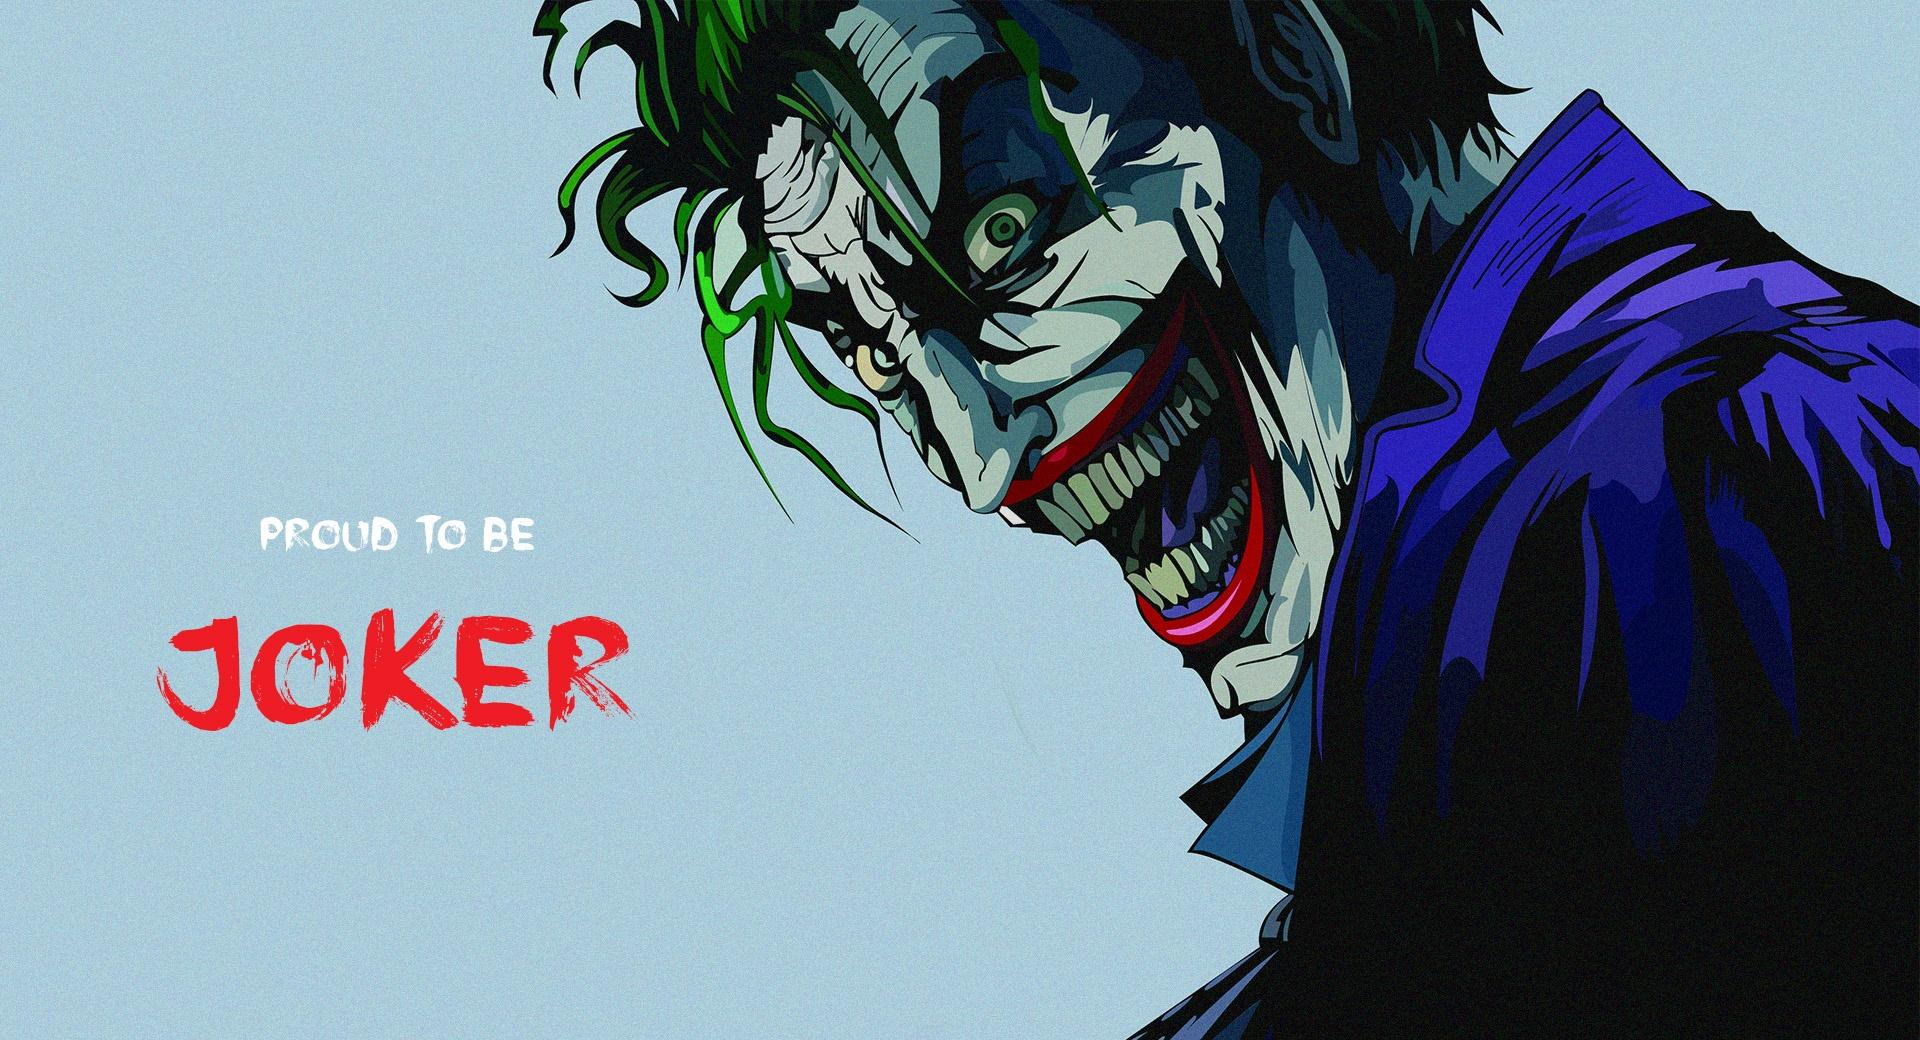 Proud to be Joker wallpapers HD quality